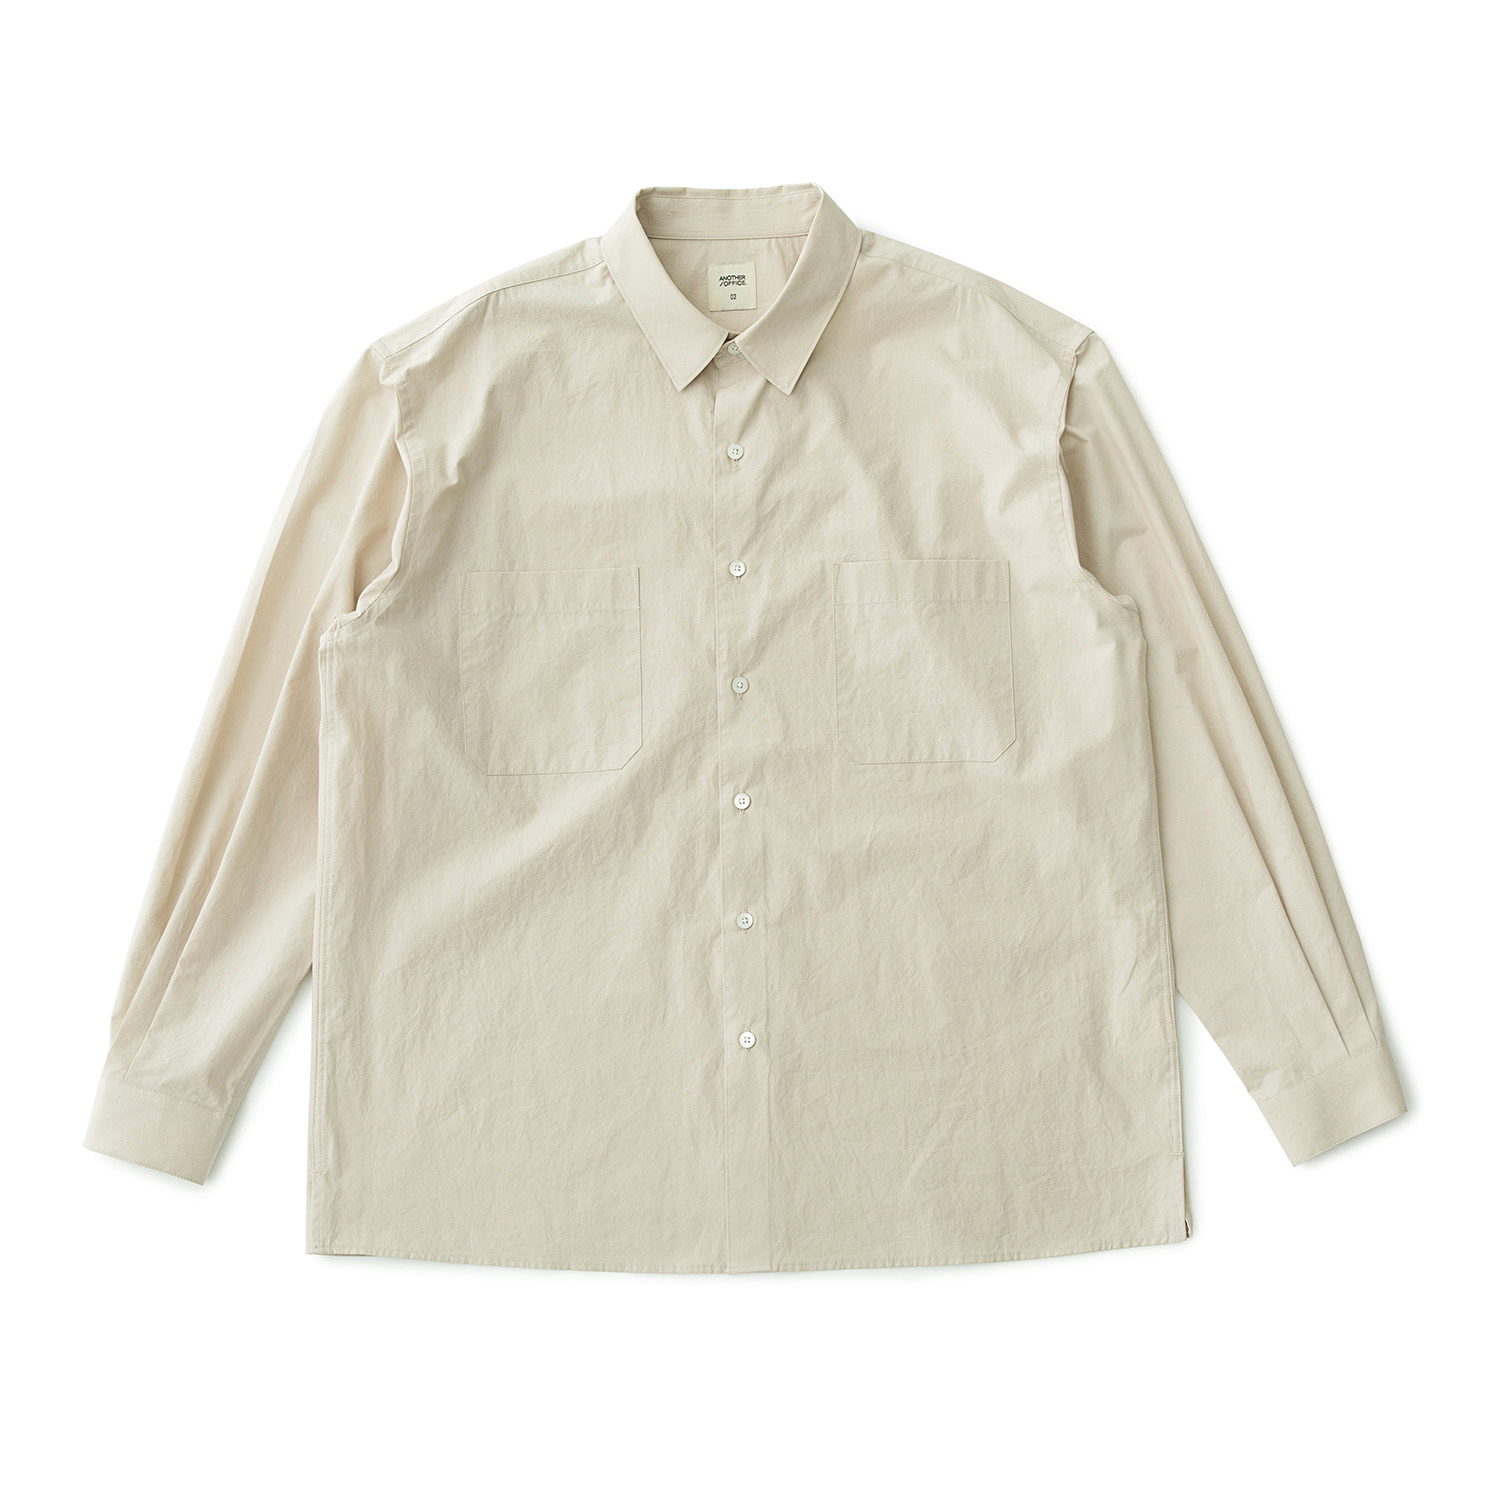 [재입고] Comfy Oversized Shirt (Oatmeal)